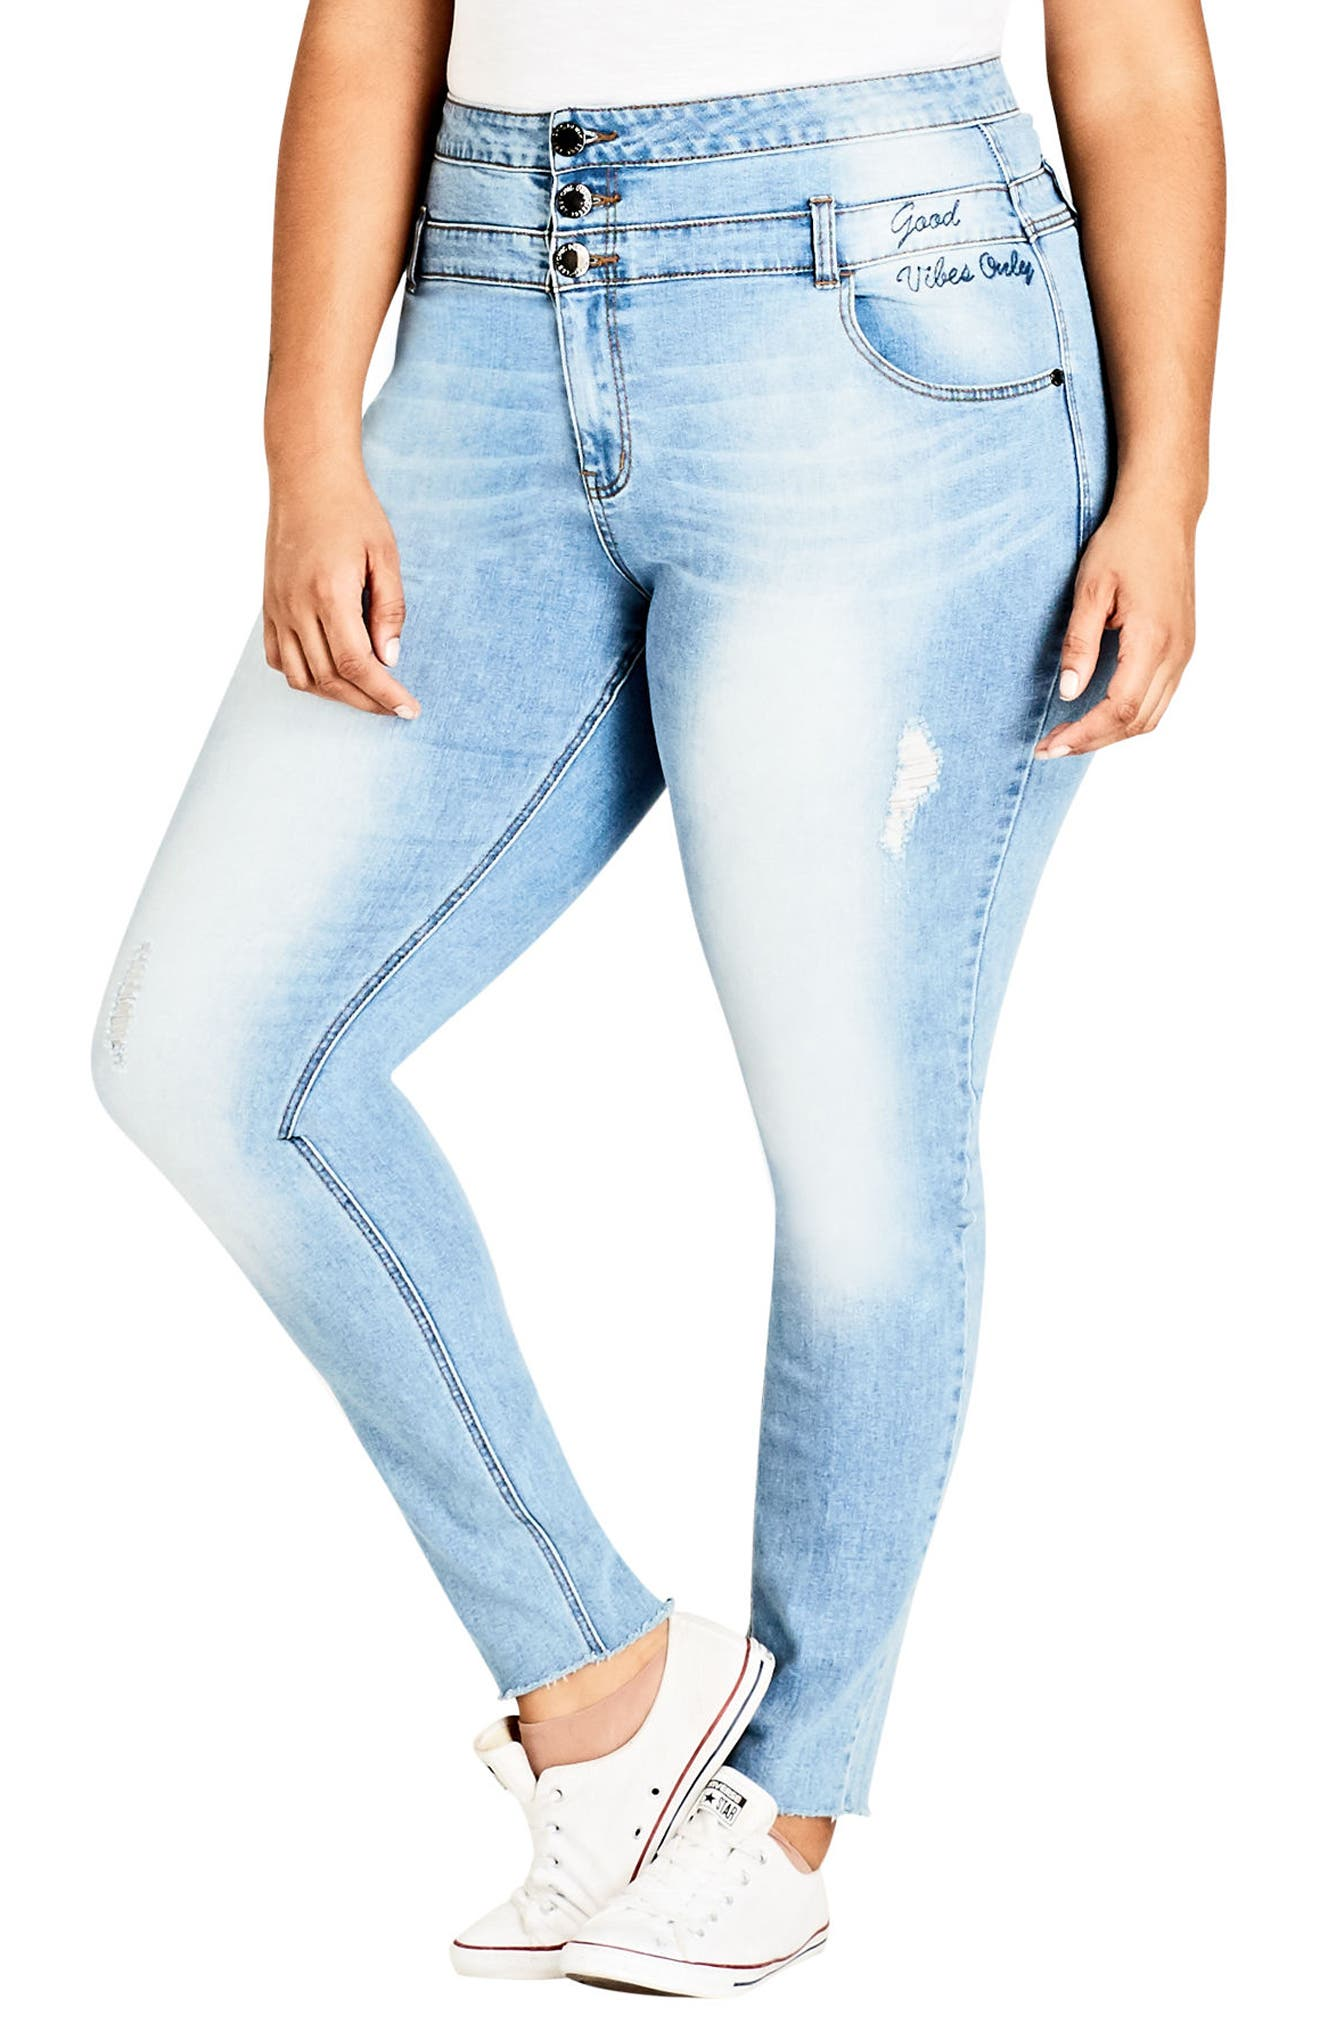 Alternate Image 1 Selected - City Chic Harley Vibes Ripped Corset Skinny Jeans (Plus Size)